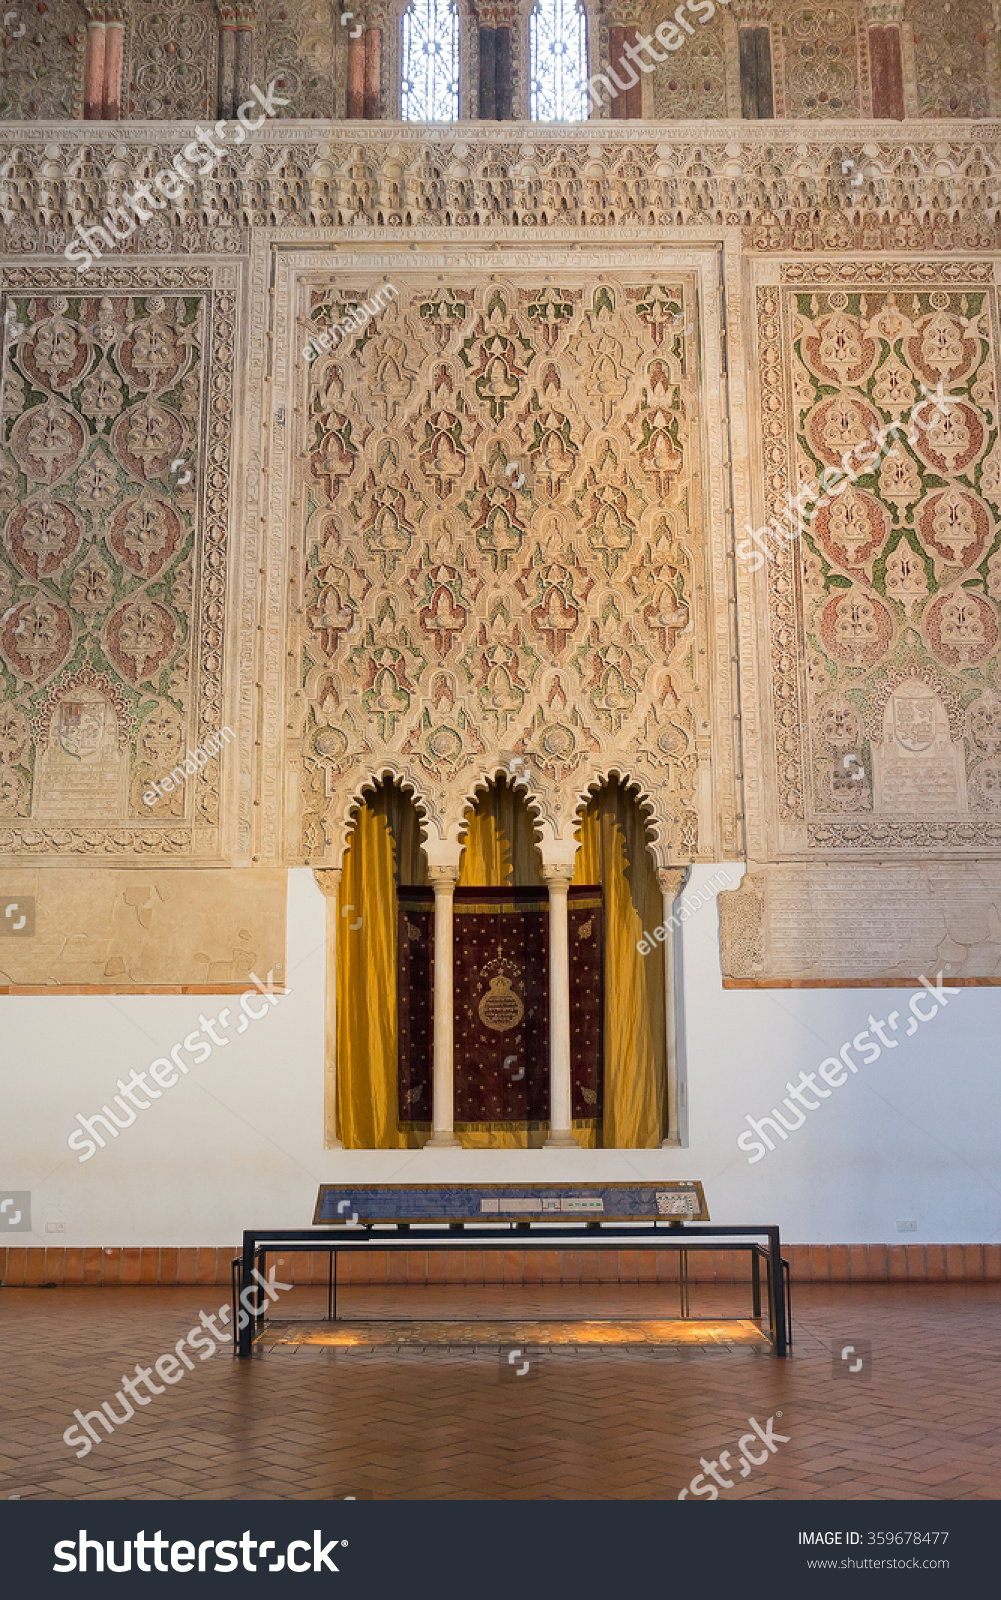 Maison Decor Valladolid Toledo March 27 Interior Synagogue El Stock Photo Edit Now